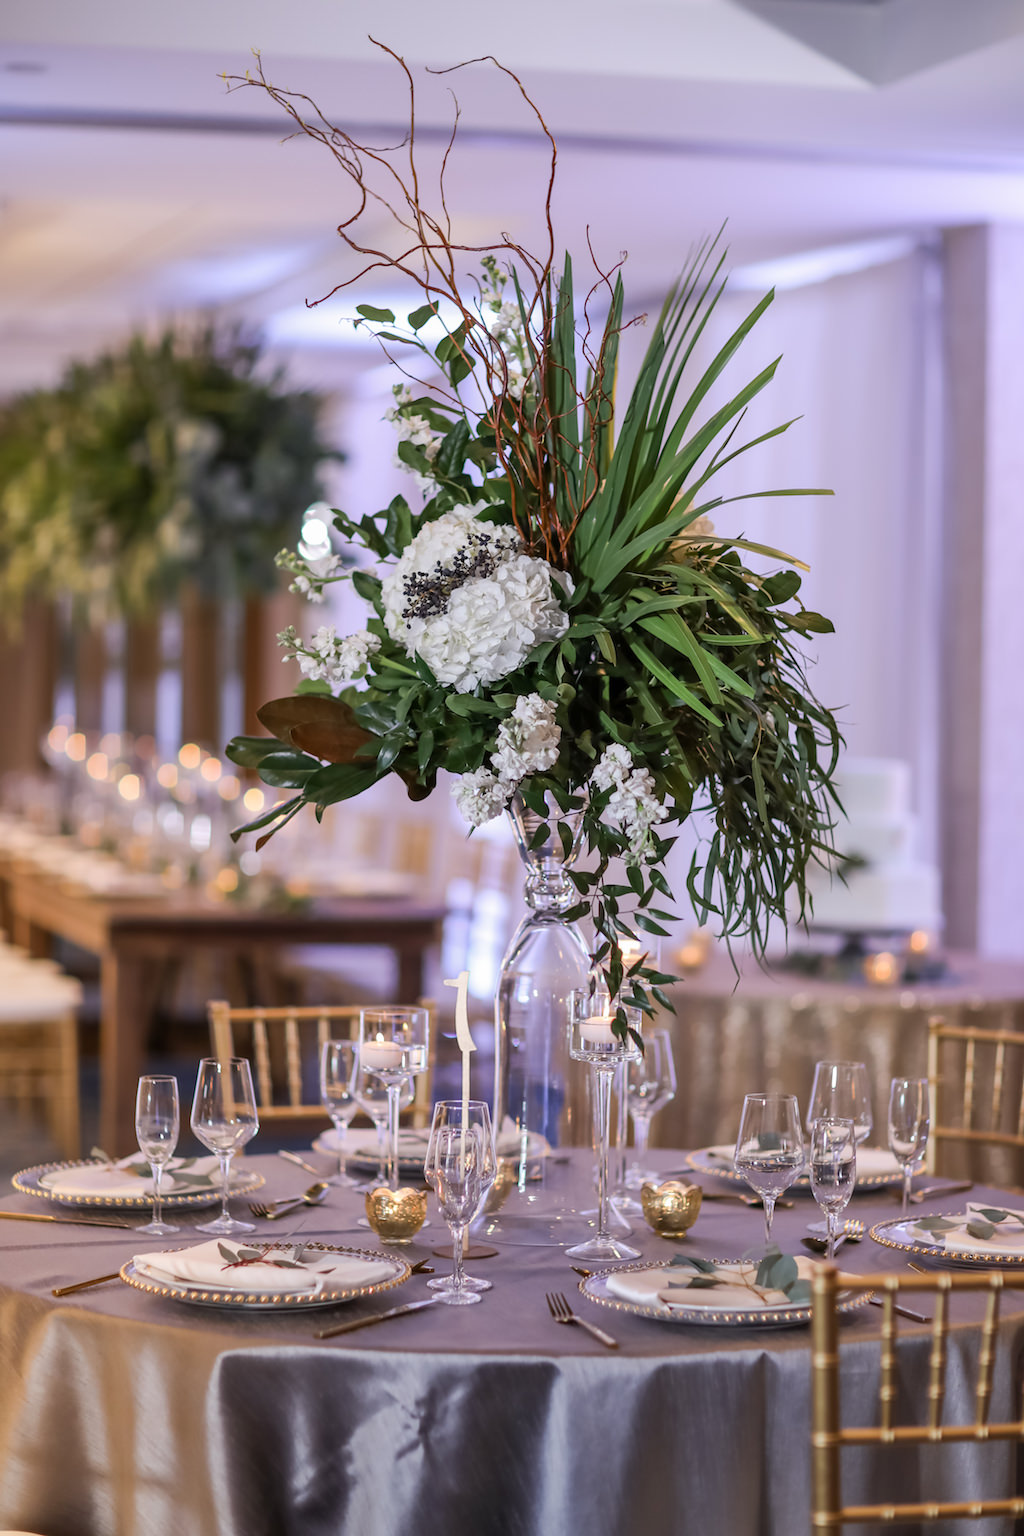 Hotel Ballroom Wedding Reception Round Table Decor with Tall White Floral, Tropical Greenery and Natural Branches Centerpiece in Unique Glass Vase, with Gray Satin Linens   Tampa Bay Waterfront Hotel Venue Hilton Clearwater Beach